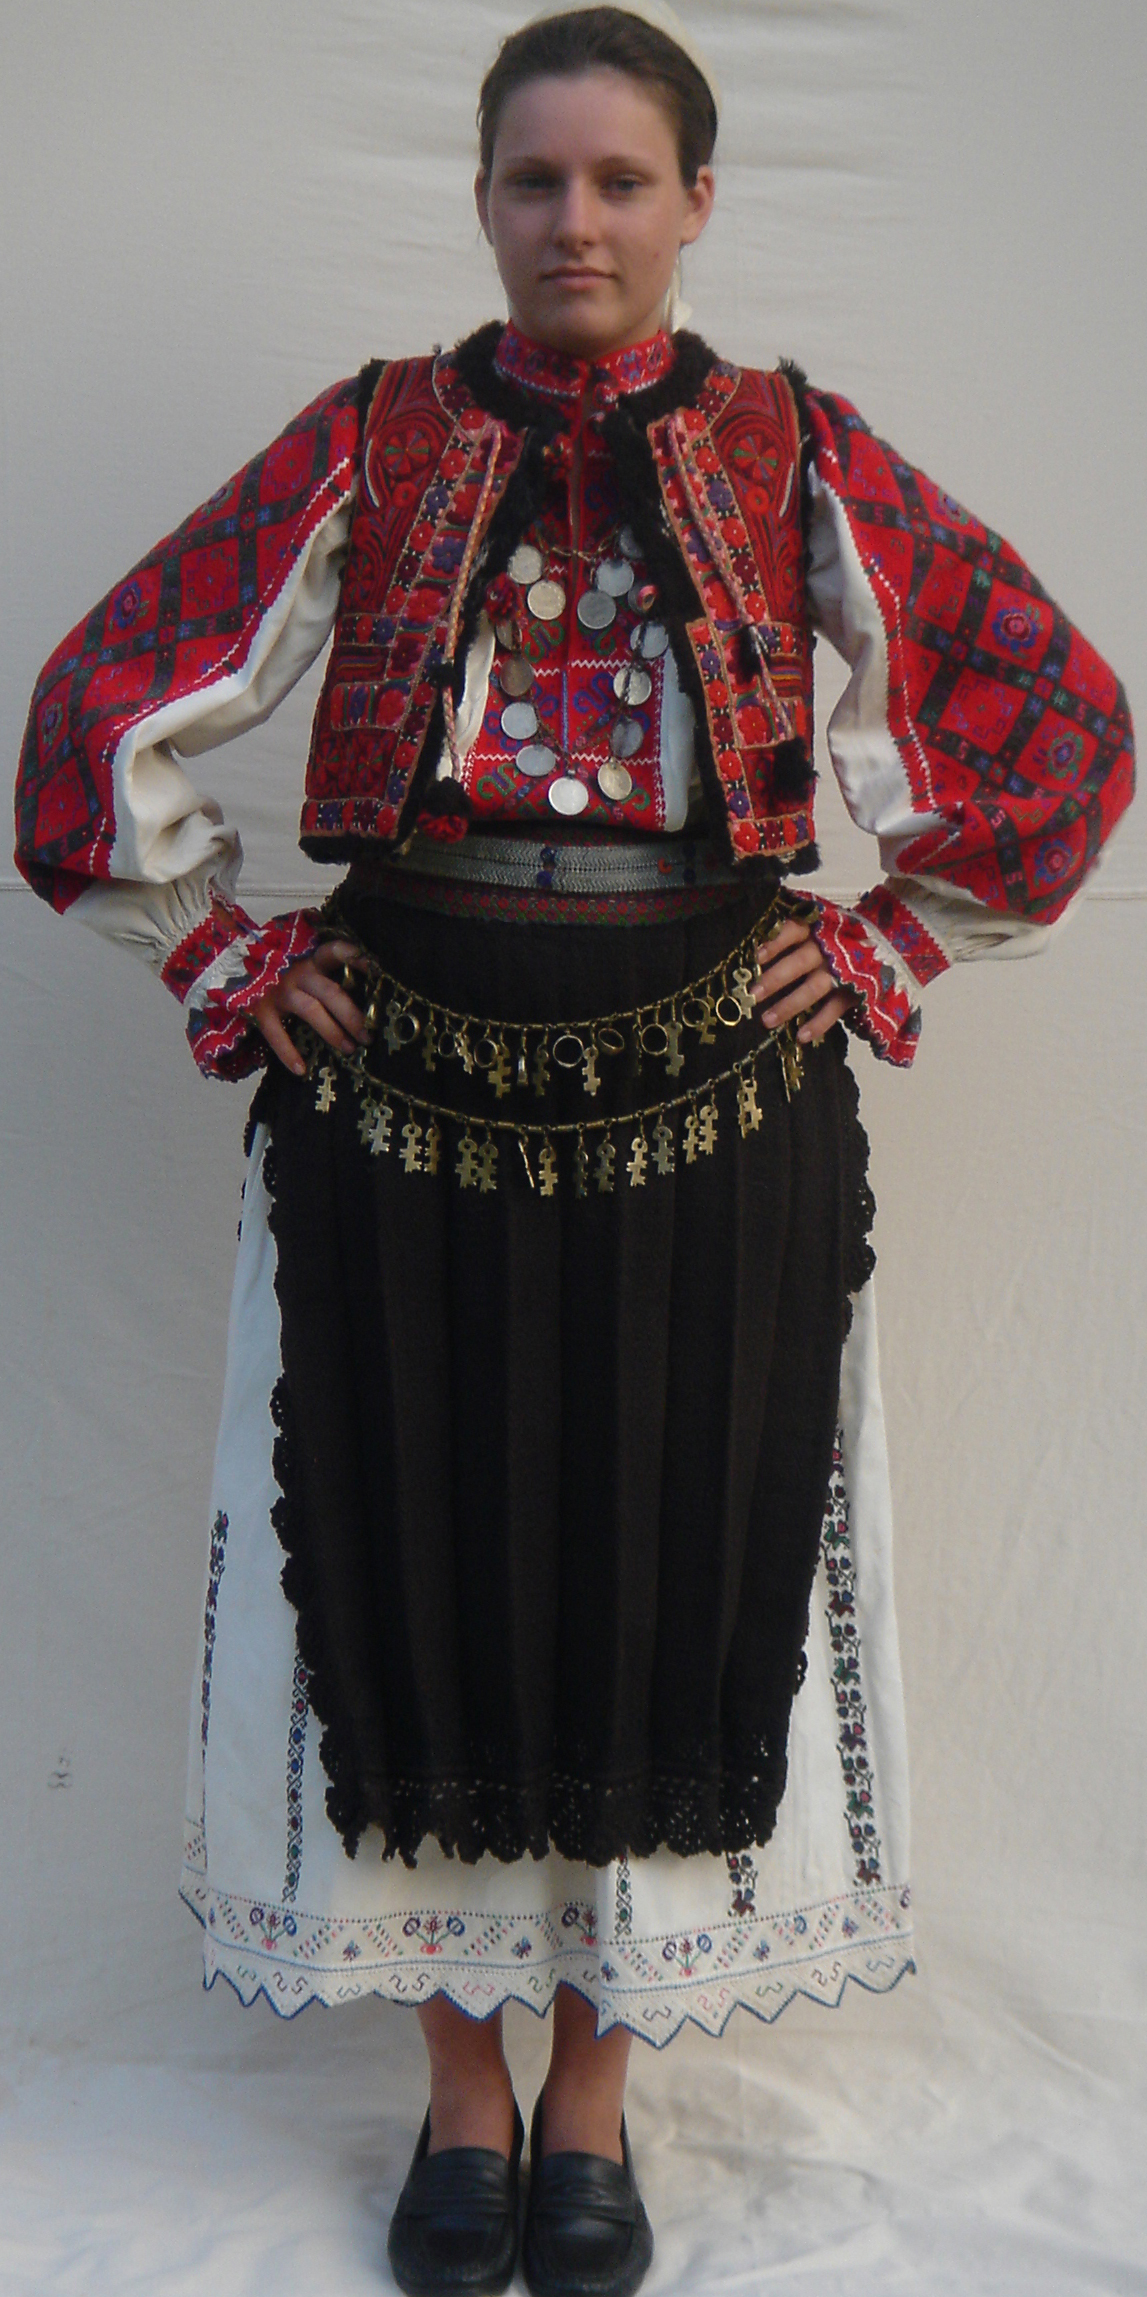 Romanian Woman's Costume